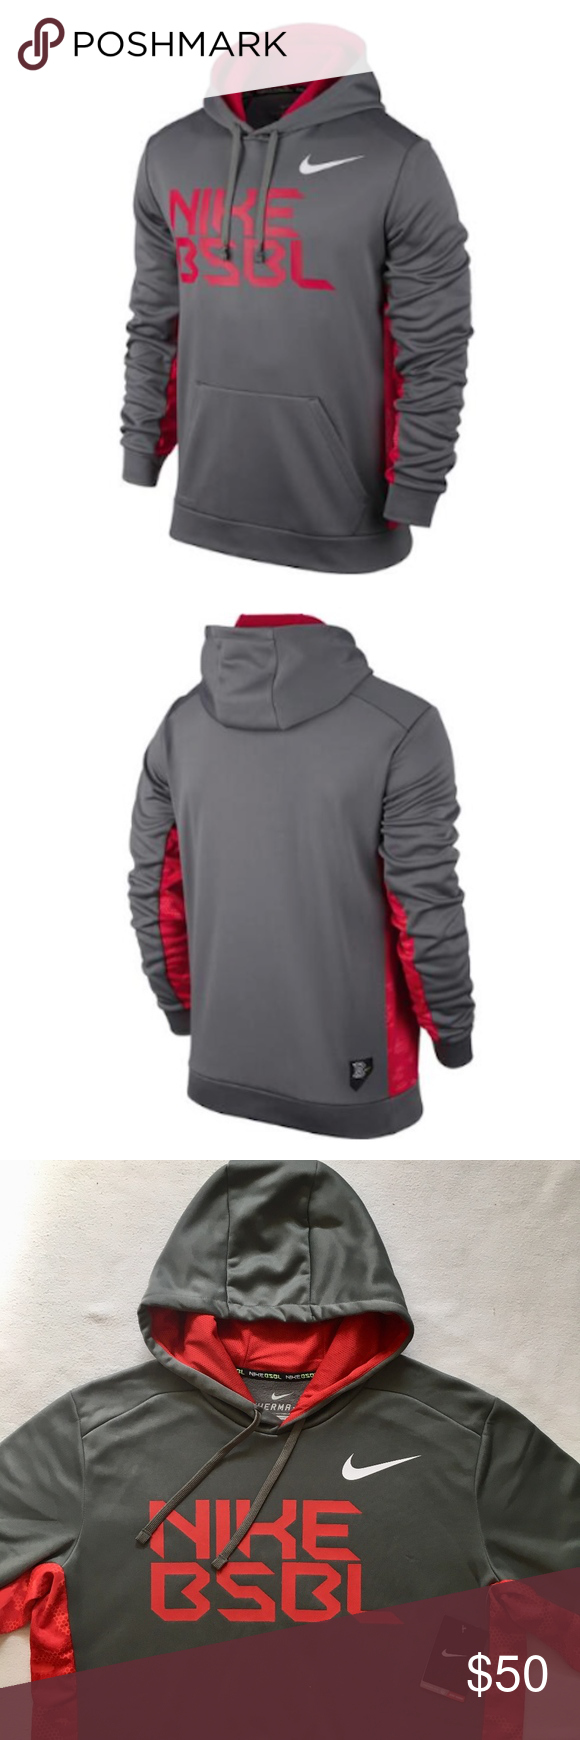 Featuring Hoodie Fit Baseball Nike A Pullover Therma Men's Ko Wrxyqi BSA8qU